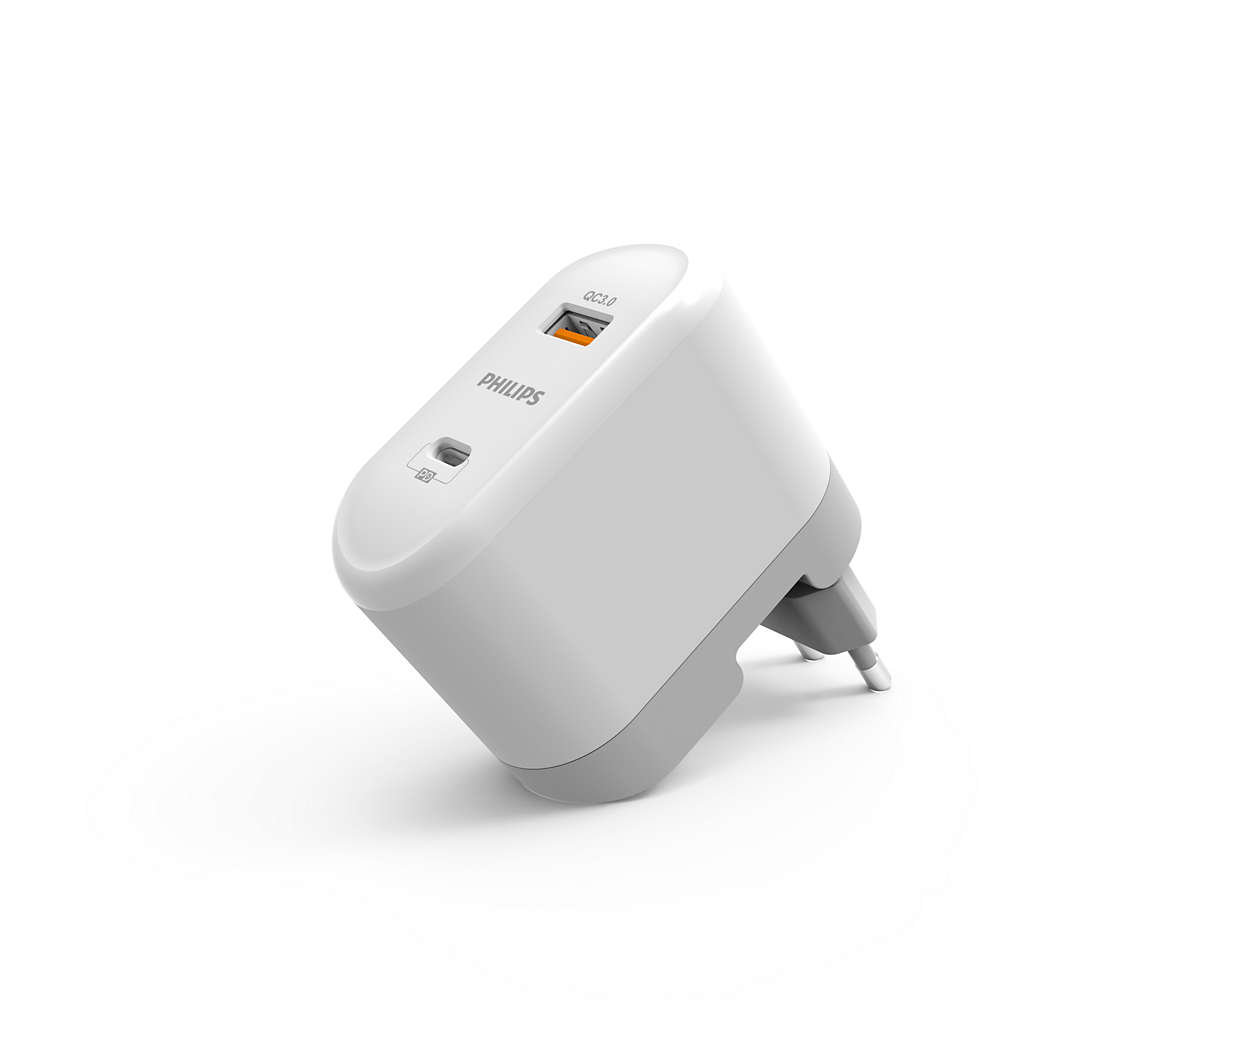 Ultra Fast wall charger PD + QC 3.0